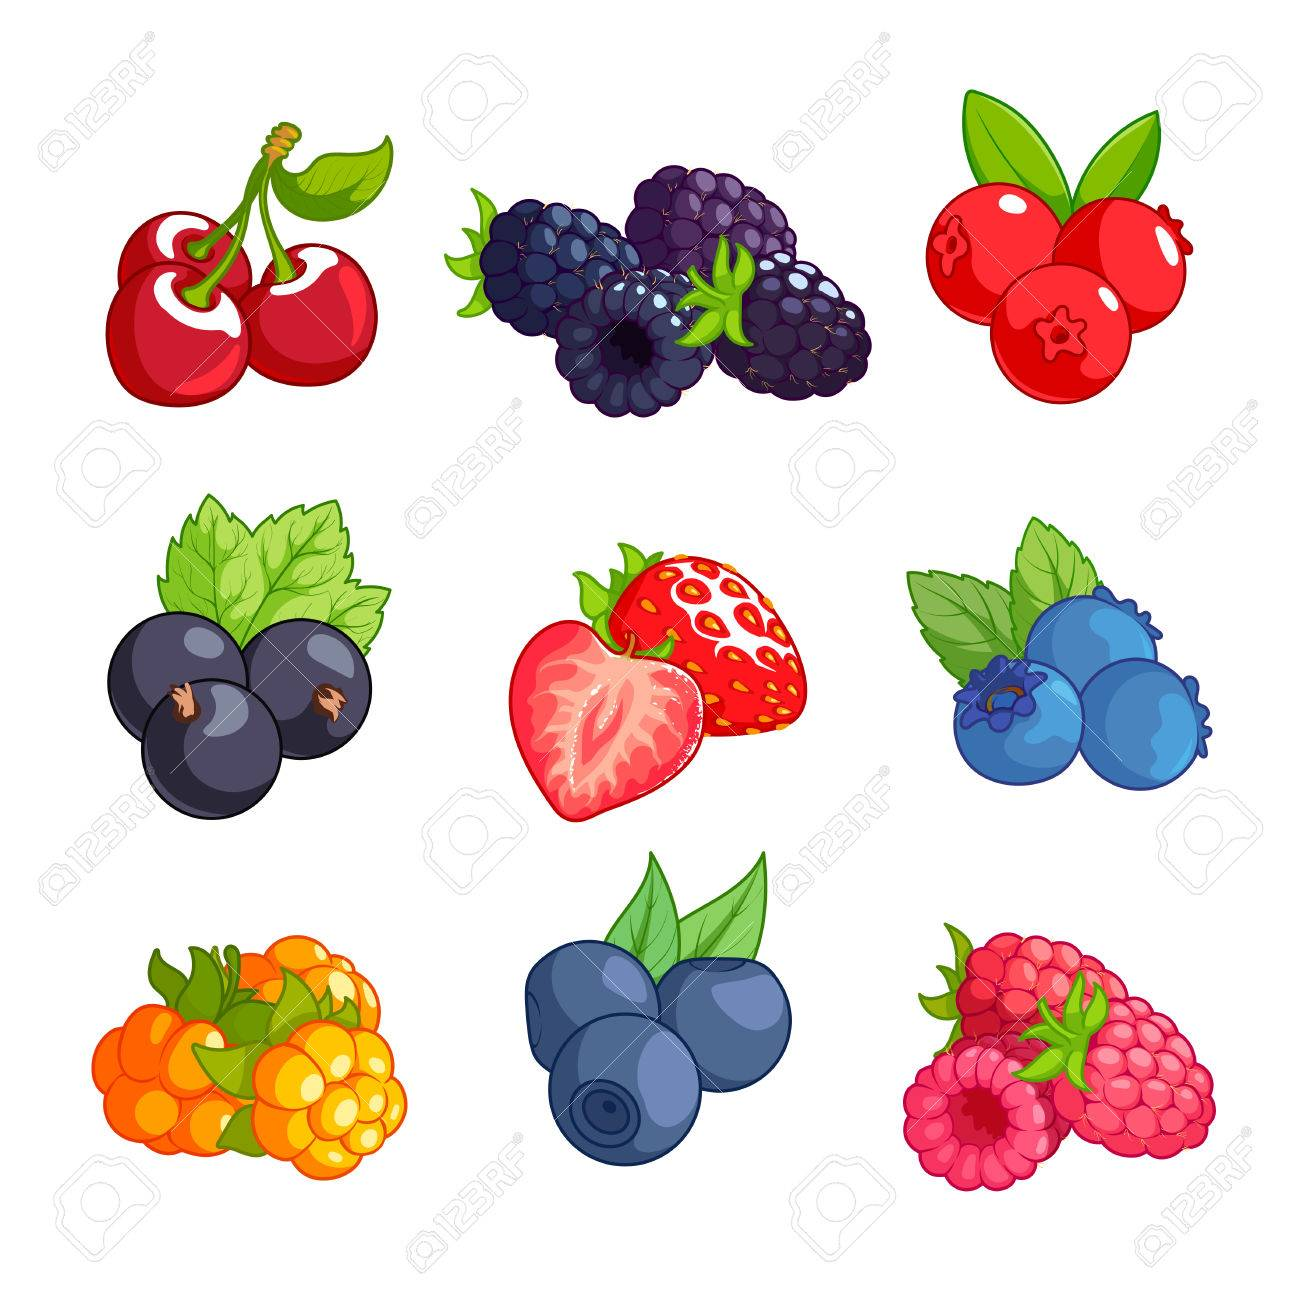 Blueberry set of different. Blueberries clipart cranberry